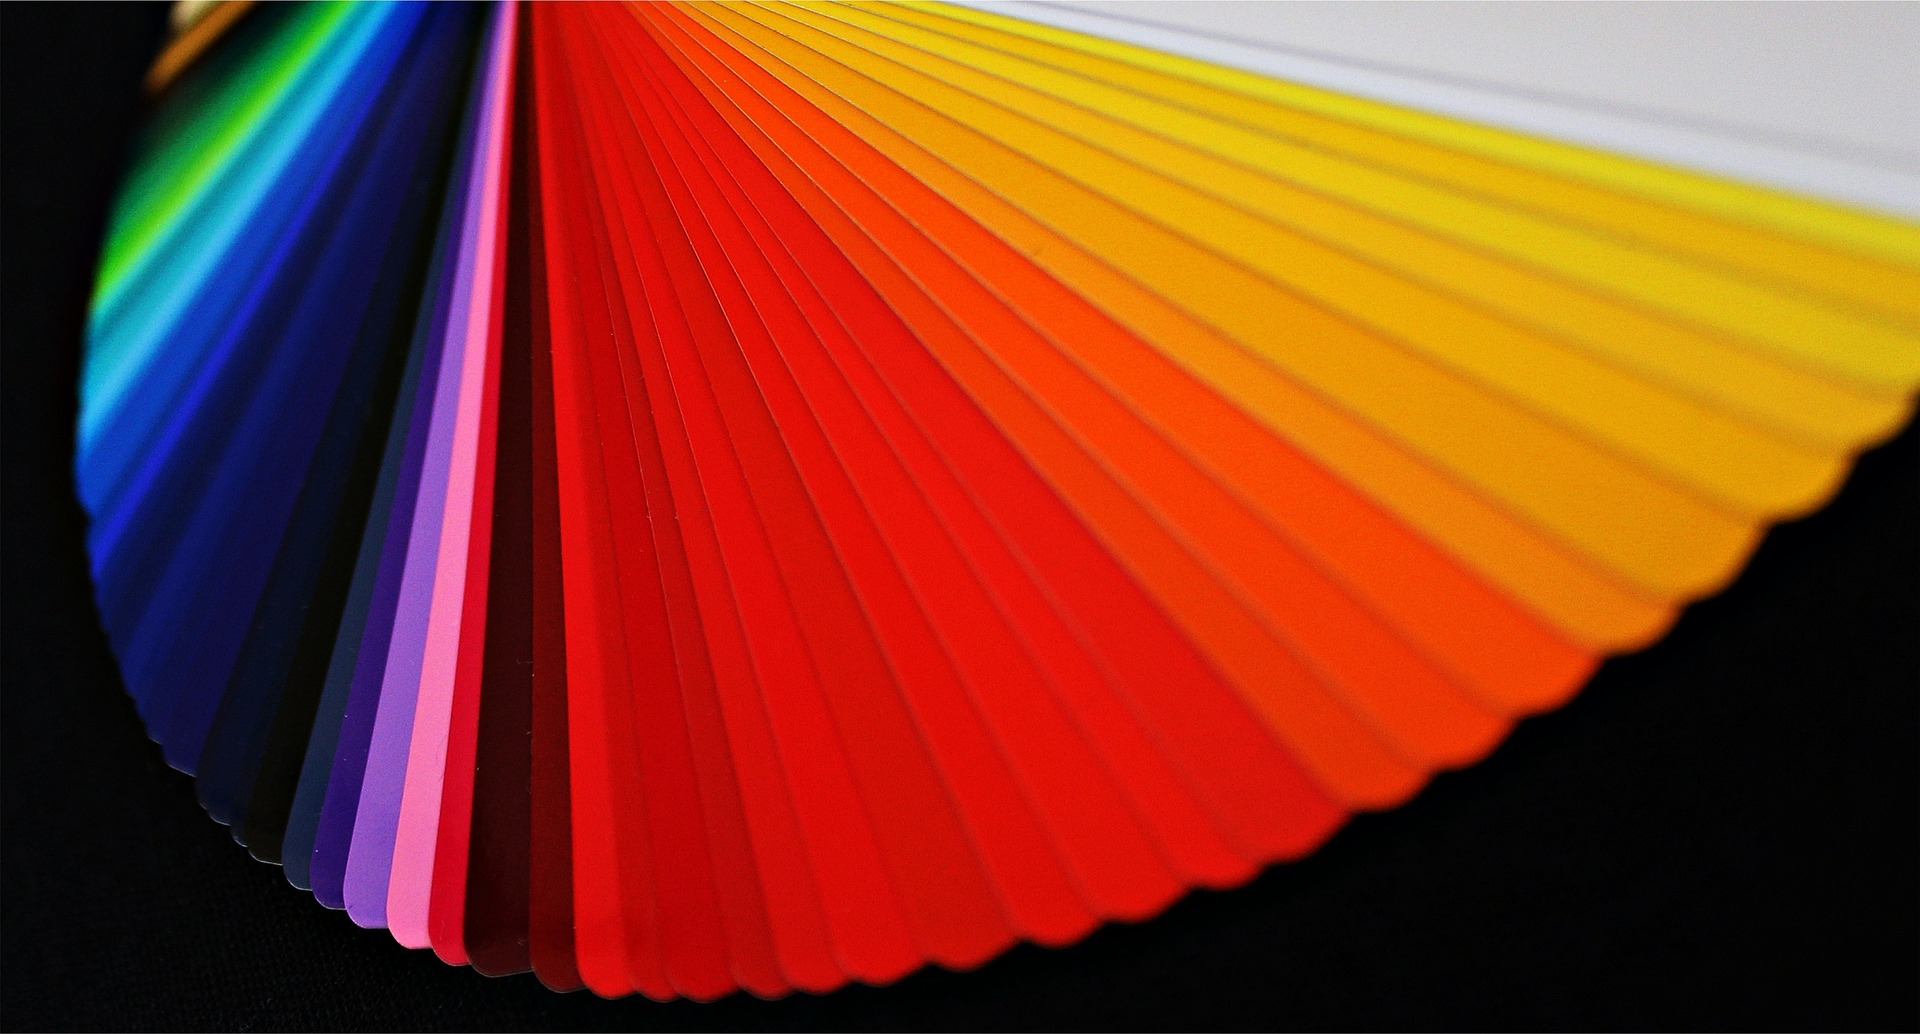 Implementation of Colour Picker in Phimpme Android Application